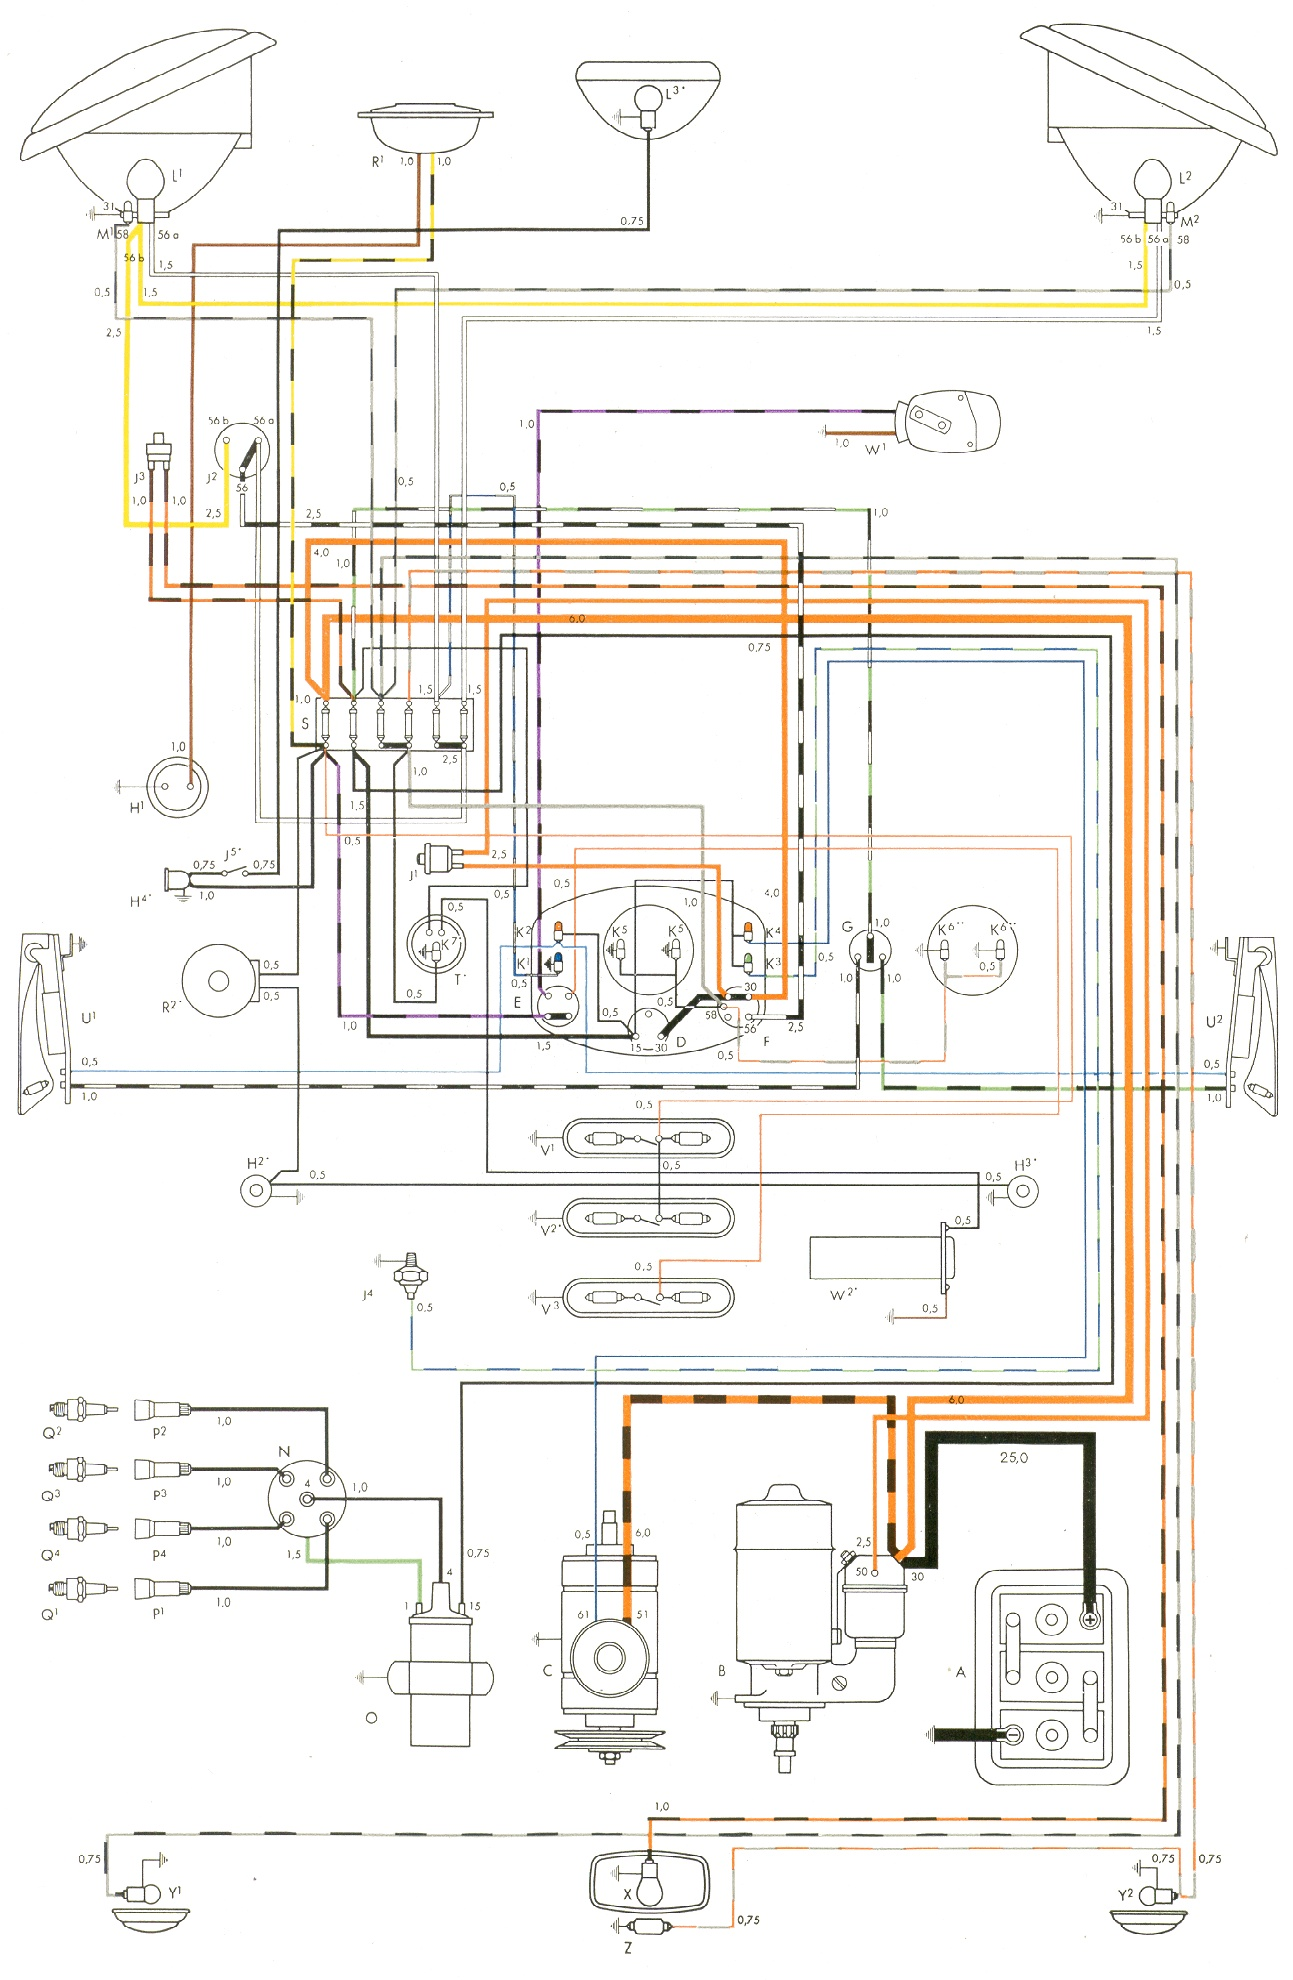 bus 54 vw wiring diagrams vw bug wiring diagram at bayanpartner.co